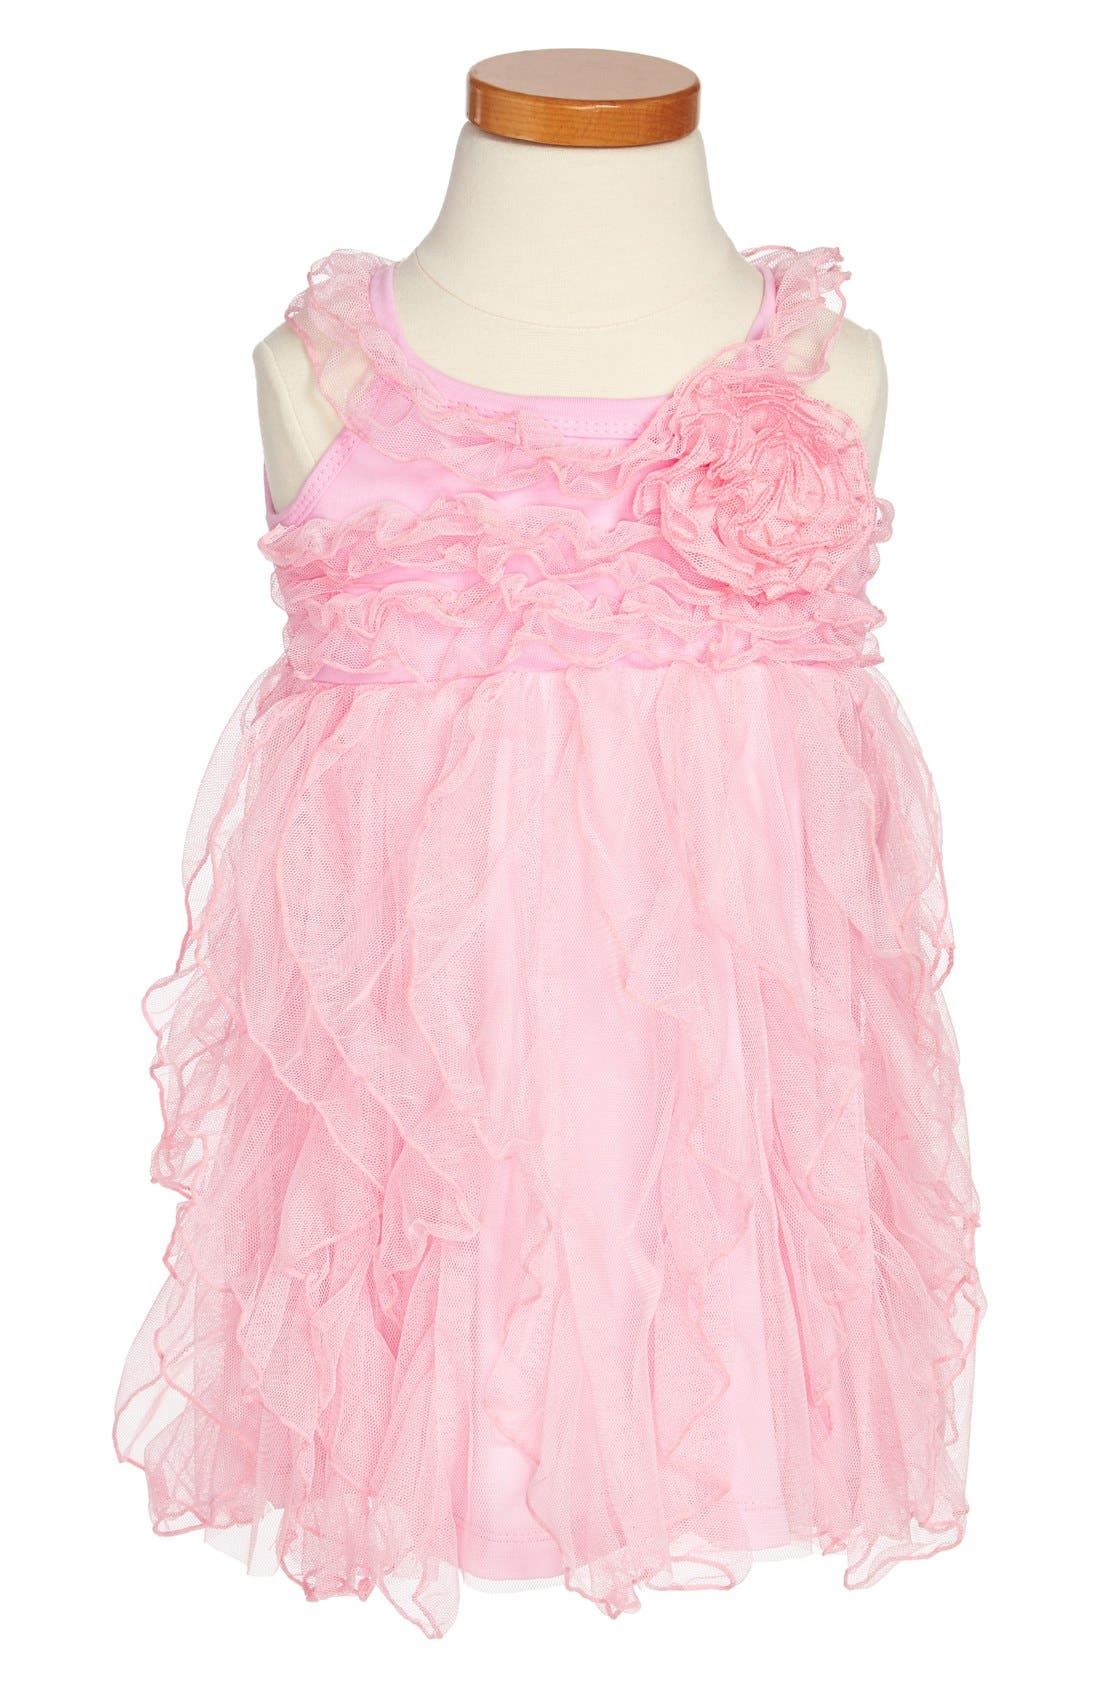 Alternate Image 1 Selected - Popatu Ruffle Dress (Toddler Girls)